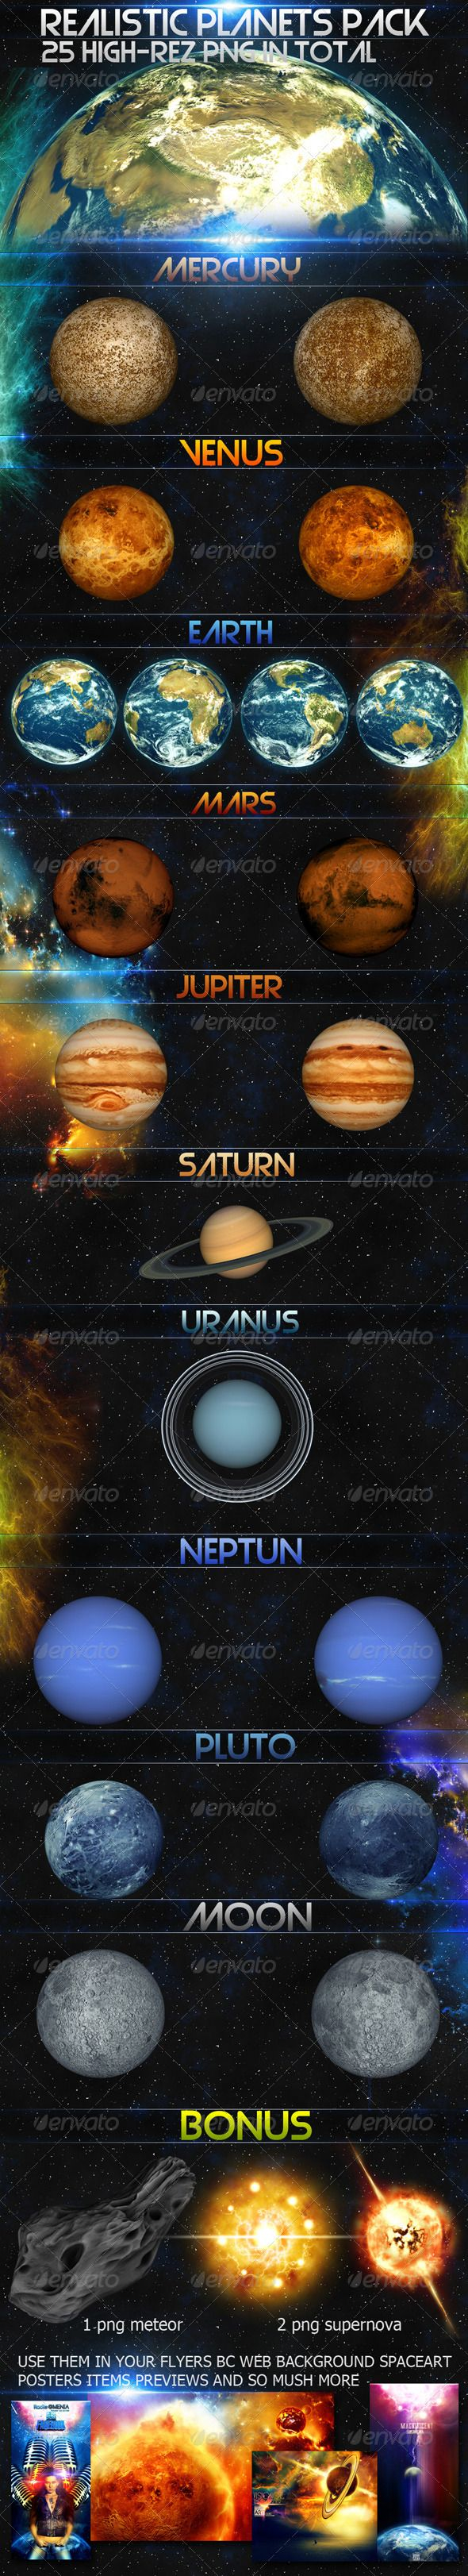 Realistic planets pack